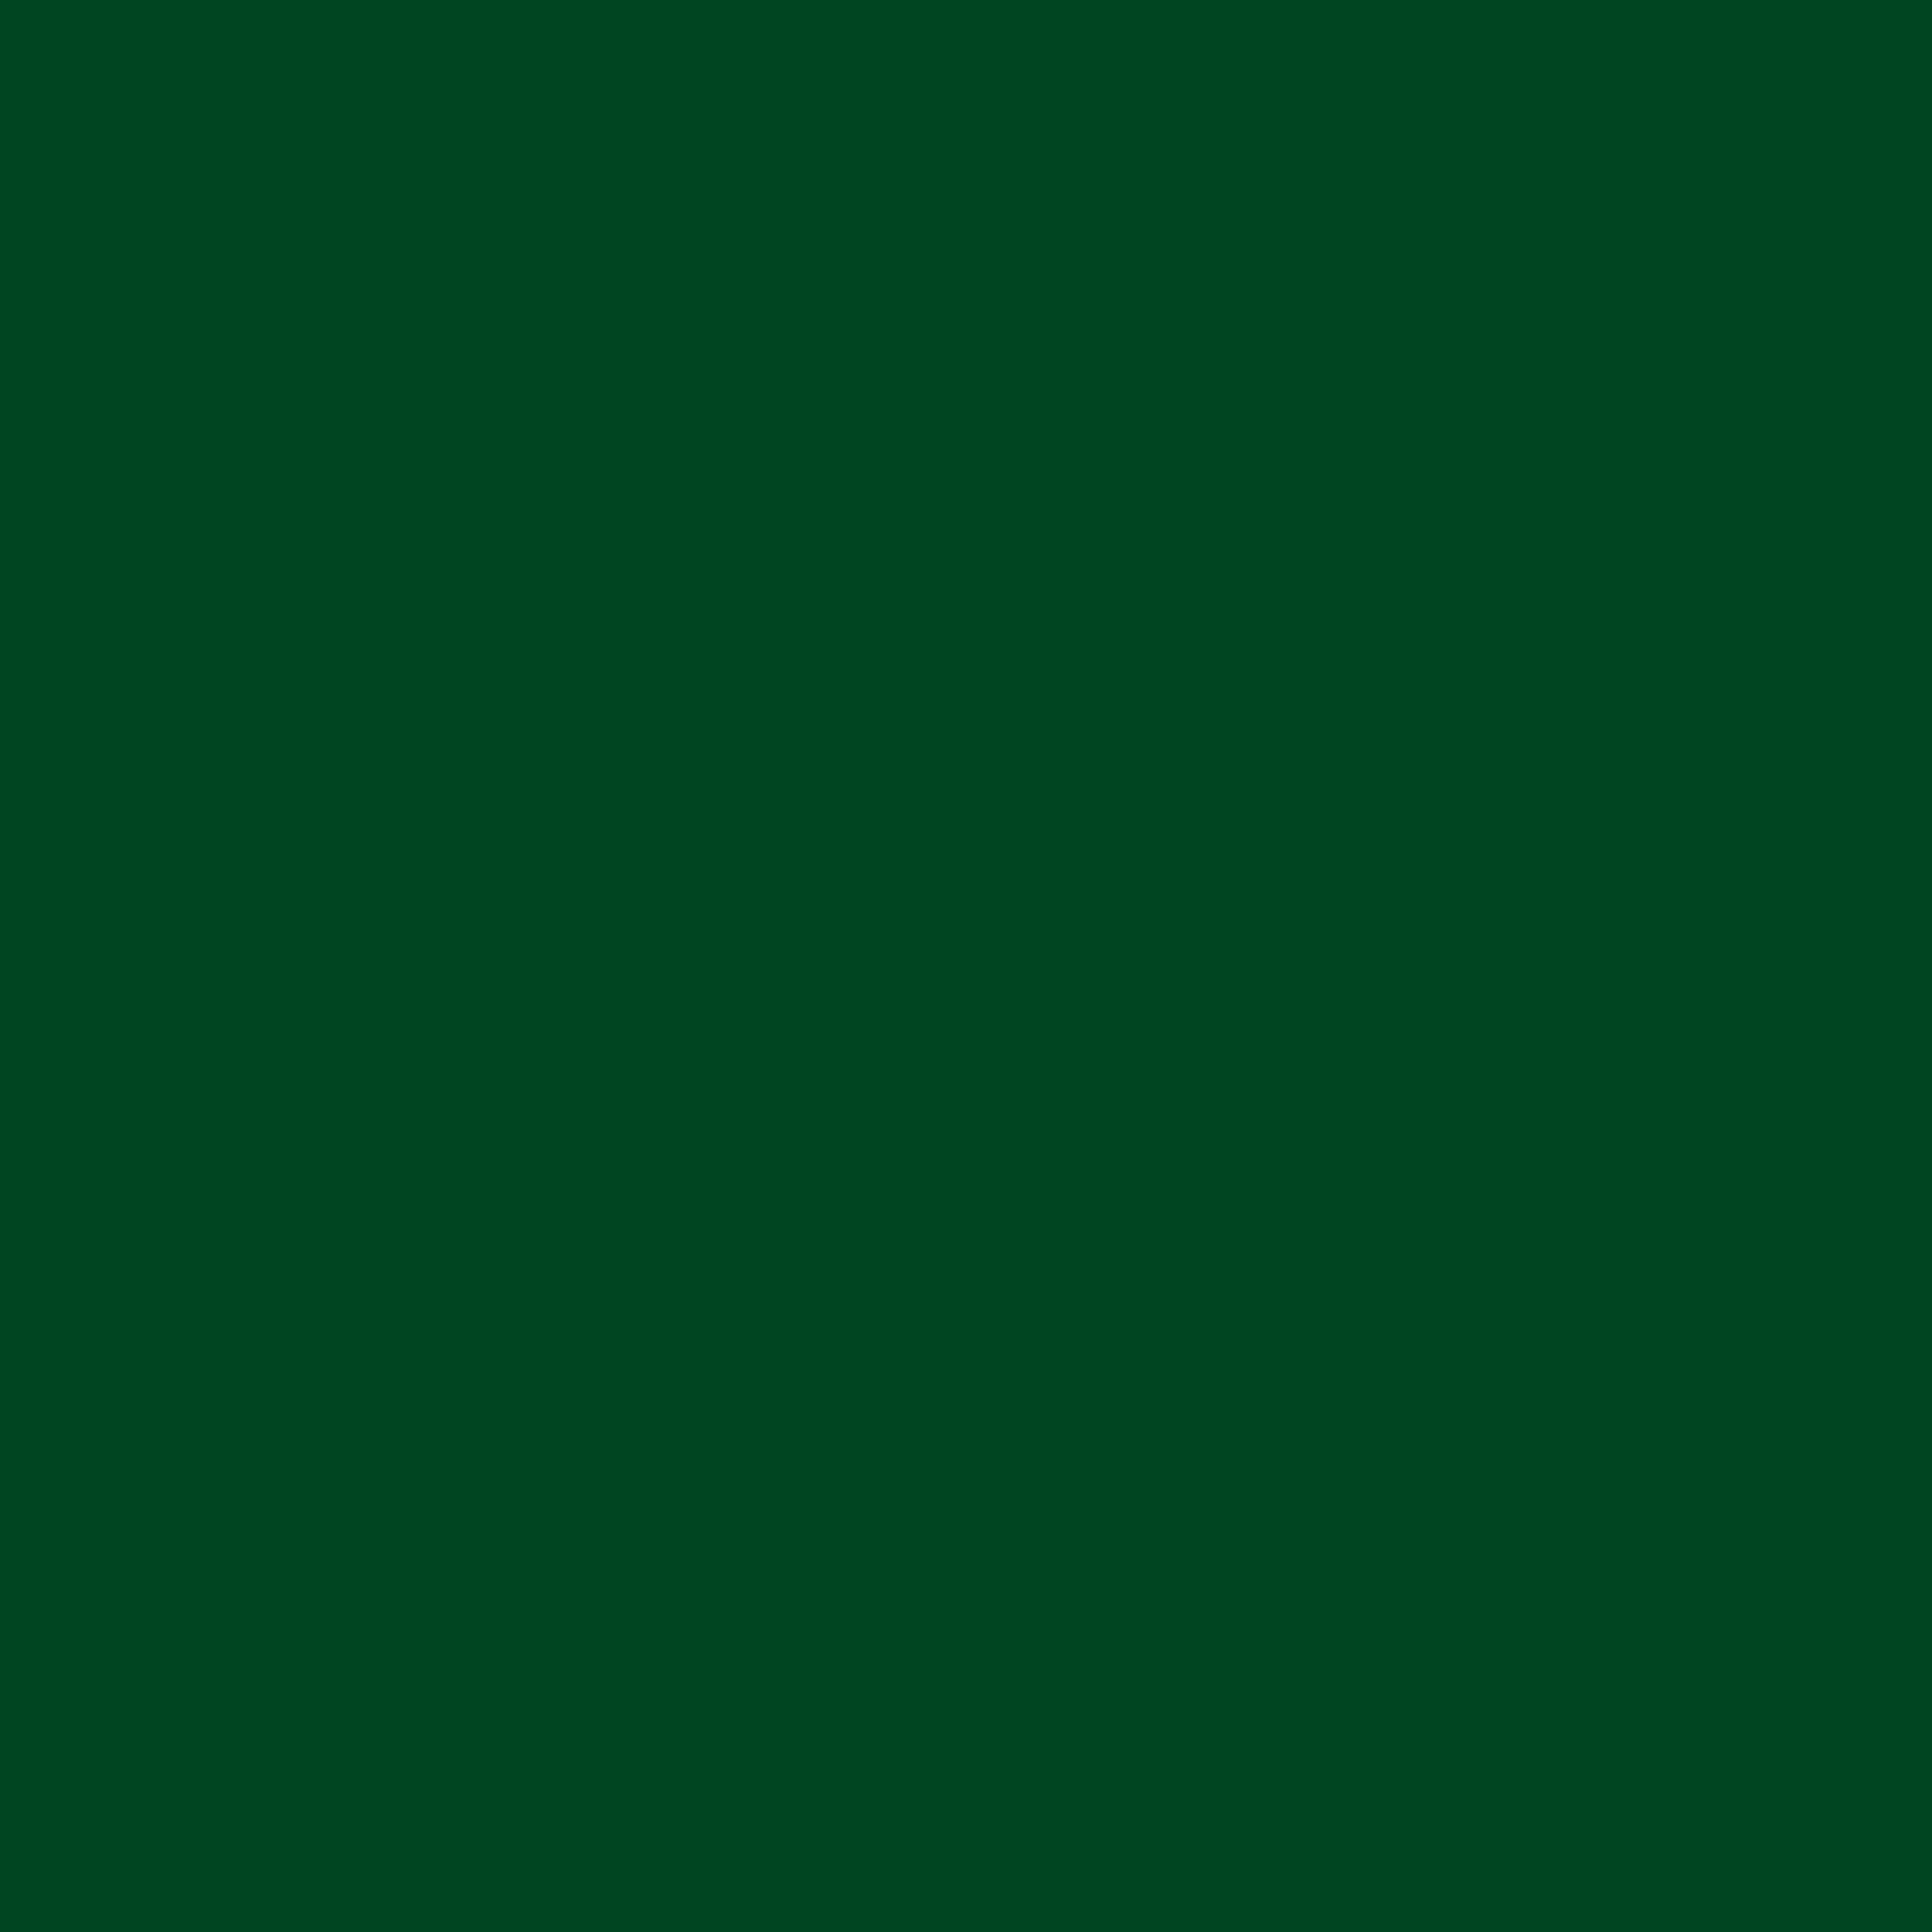 2732x2732 UP Forest Green Solid Color Background